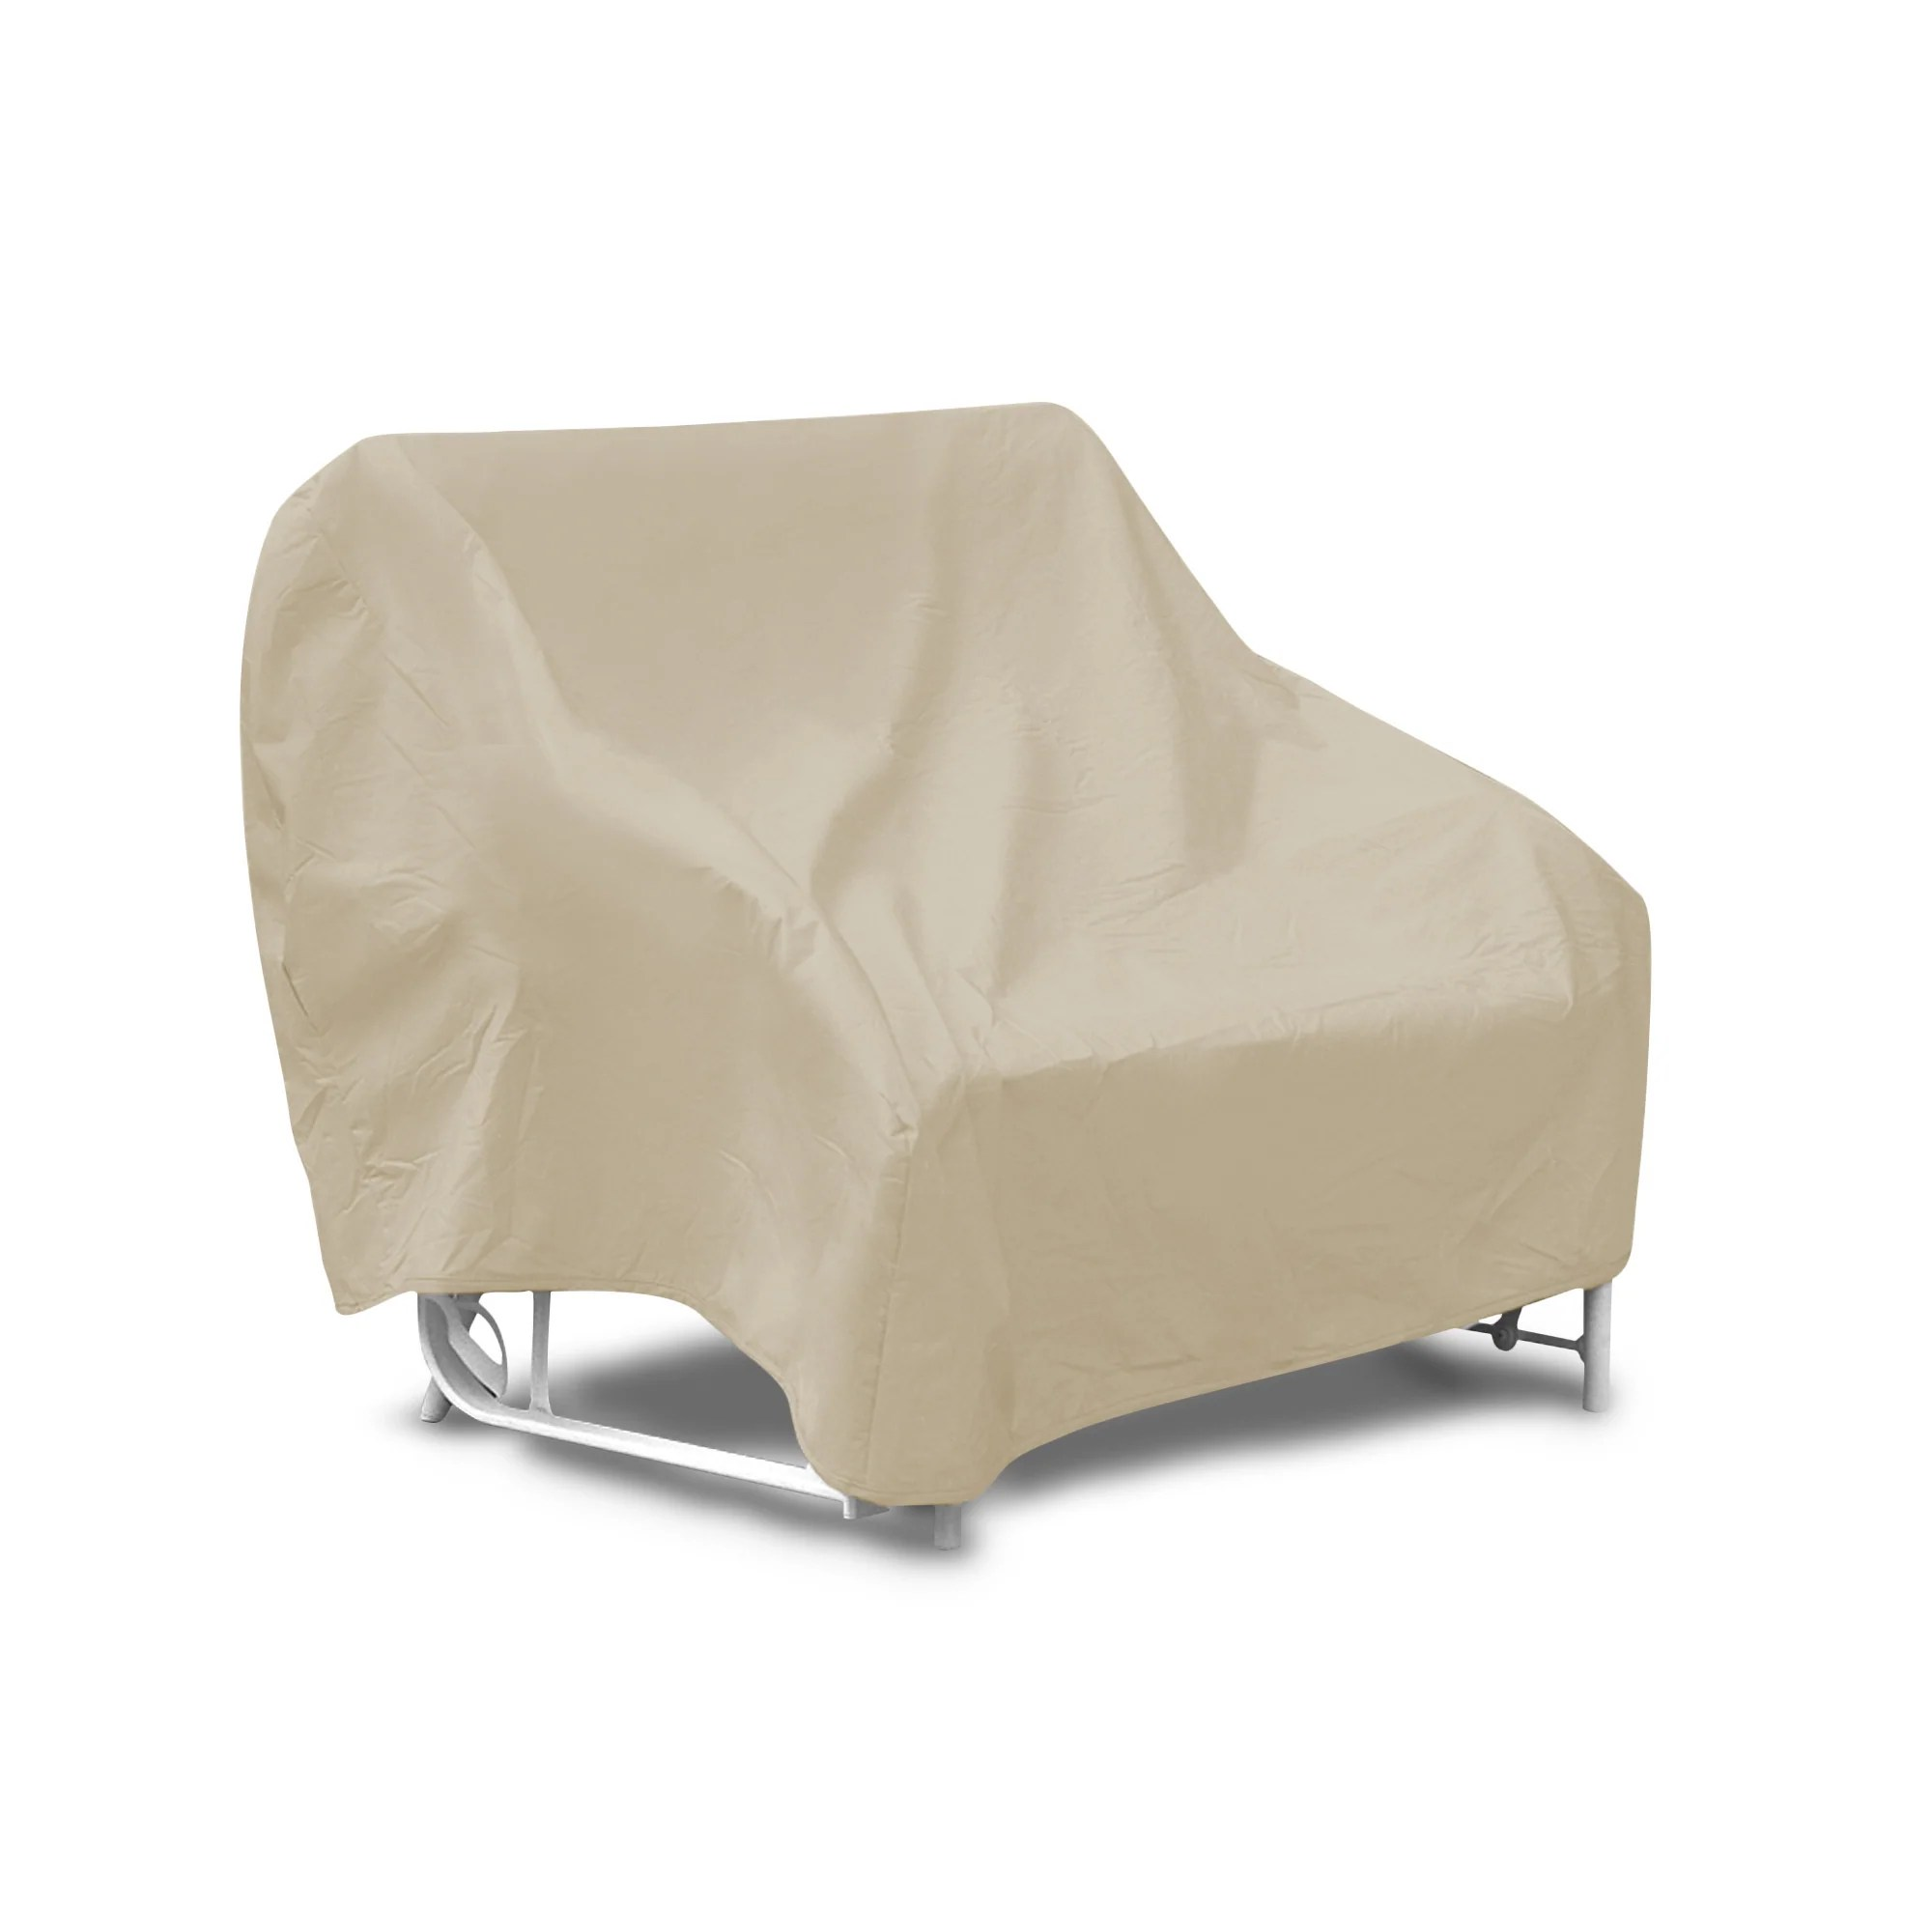 Waterproof Chair Covers Waterproof Outdoor Glider Patio Furniture Two Seat Cover